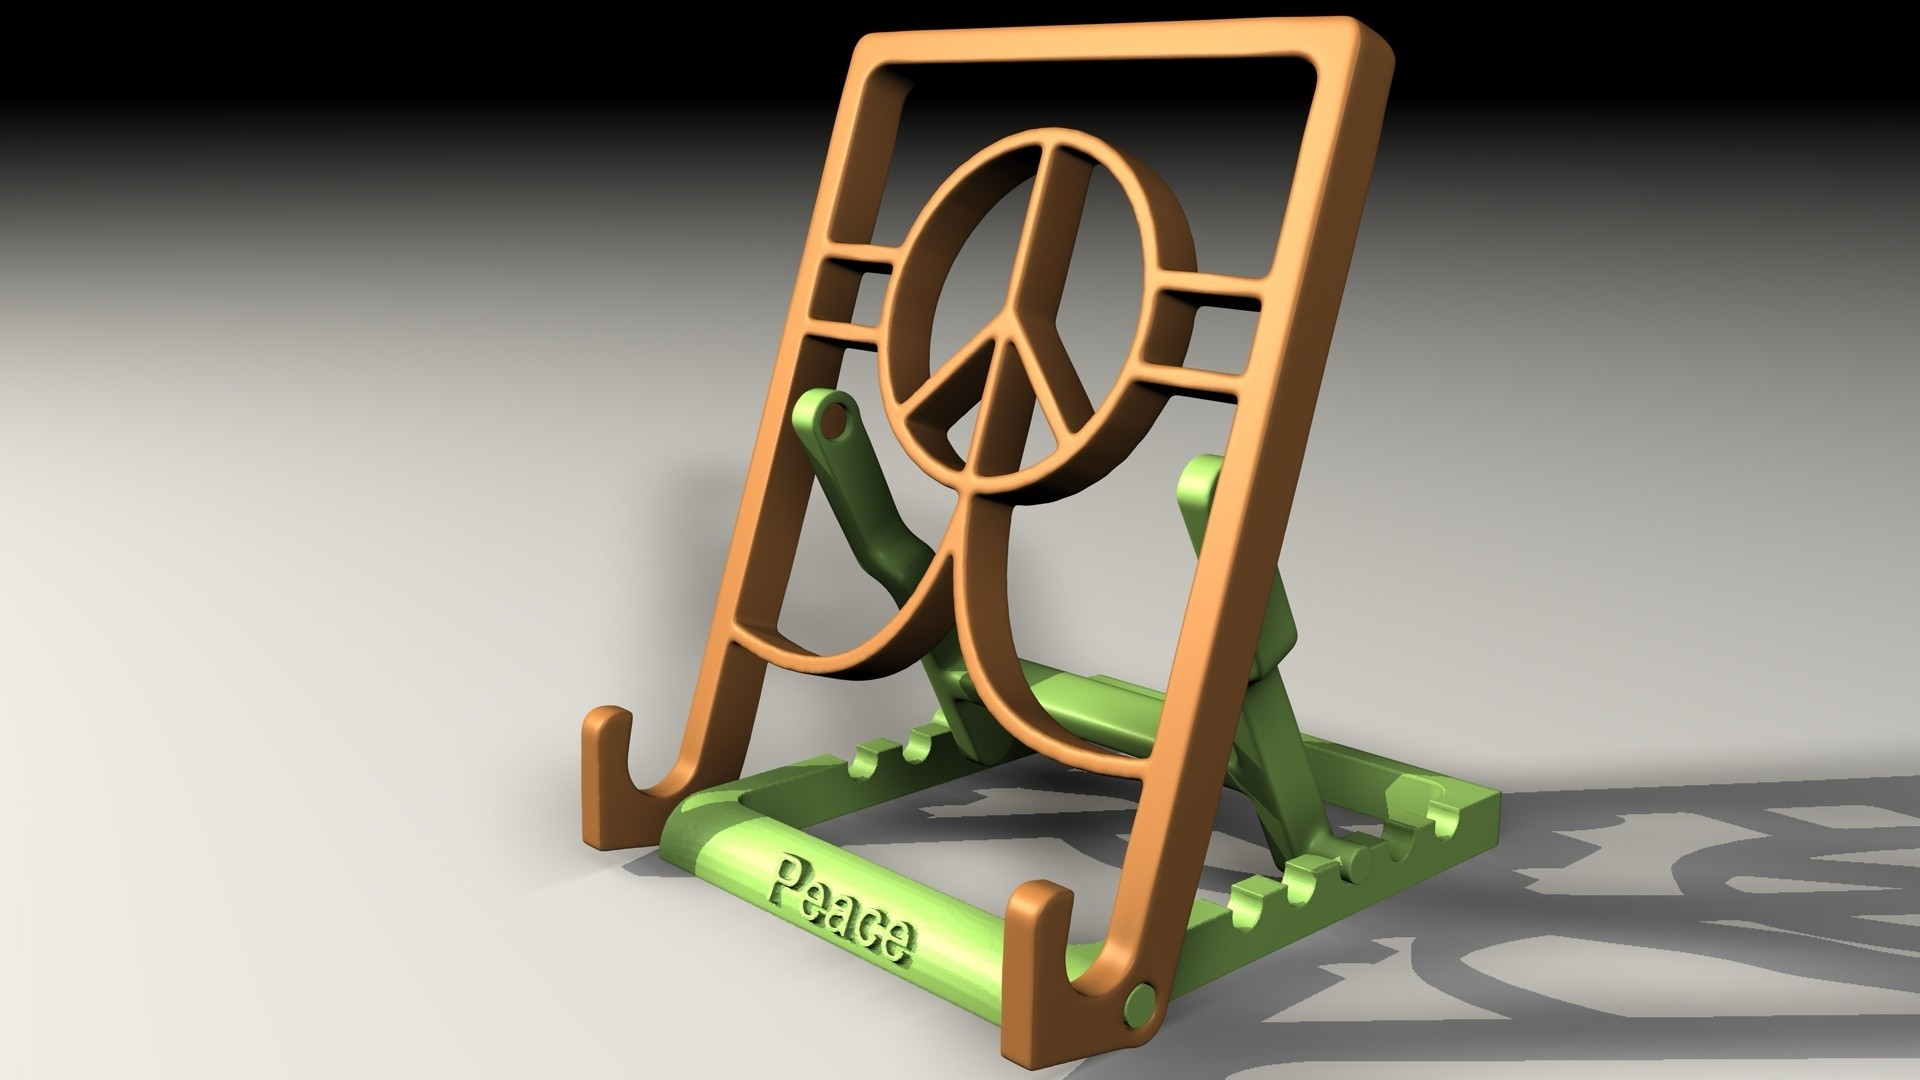 Tablet-stand-AA.jpg Download free STL file Tablet stand • Template to 3D print, pumpkinhead3d